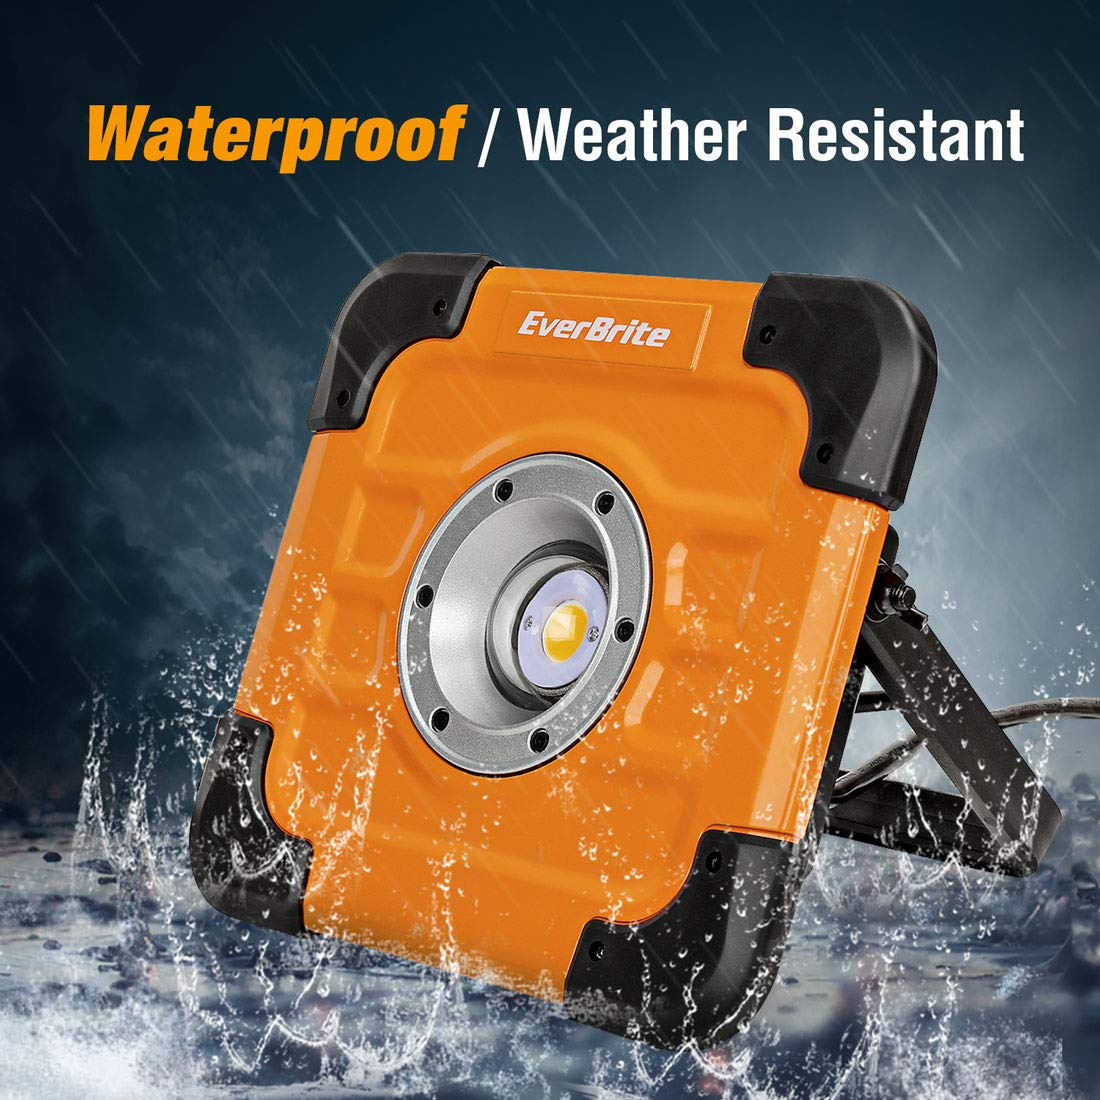 Adjustable Lighting Angles Garden and Lawn EverBrite 60W 5000LM CREE COB Work Light Garage Portable Aluminium Flood Light with Stand 5FT Cord Included for Car Repairing